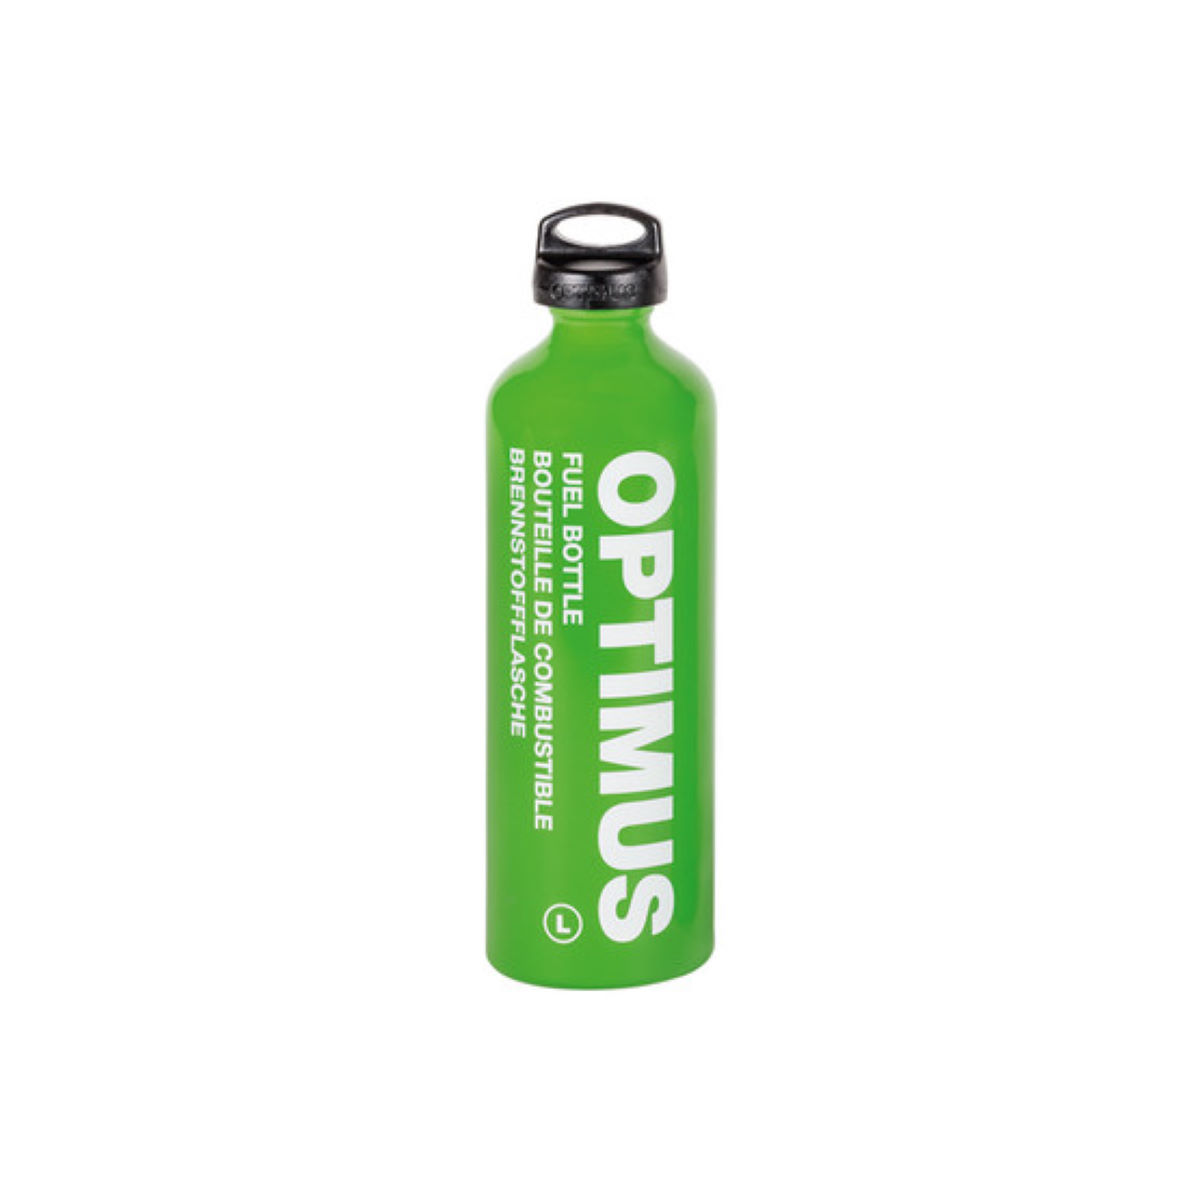 Optimus Fuel Bottle Green 1L - Combustible